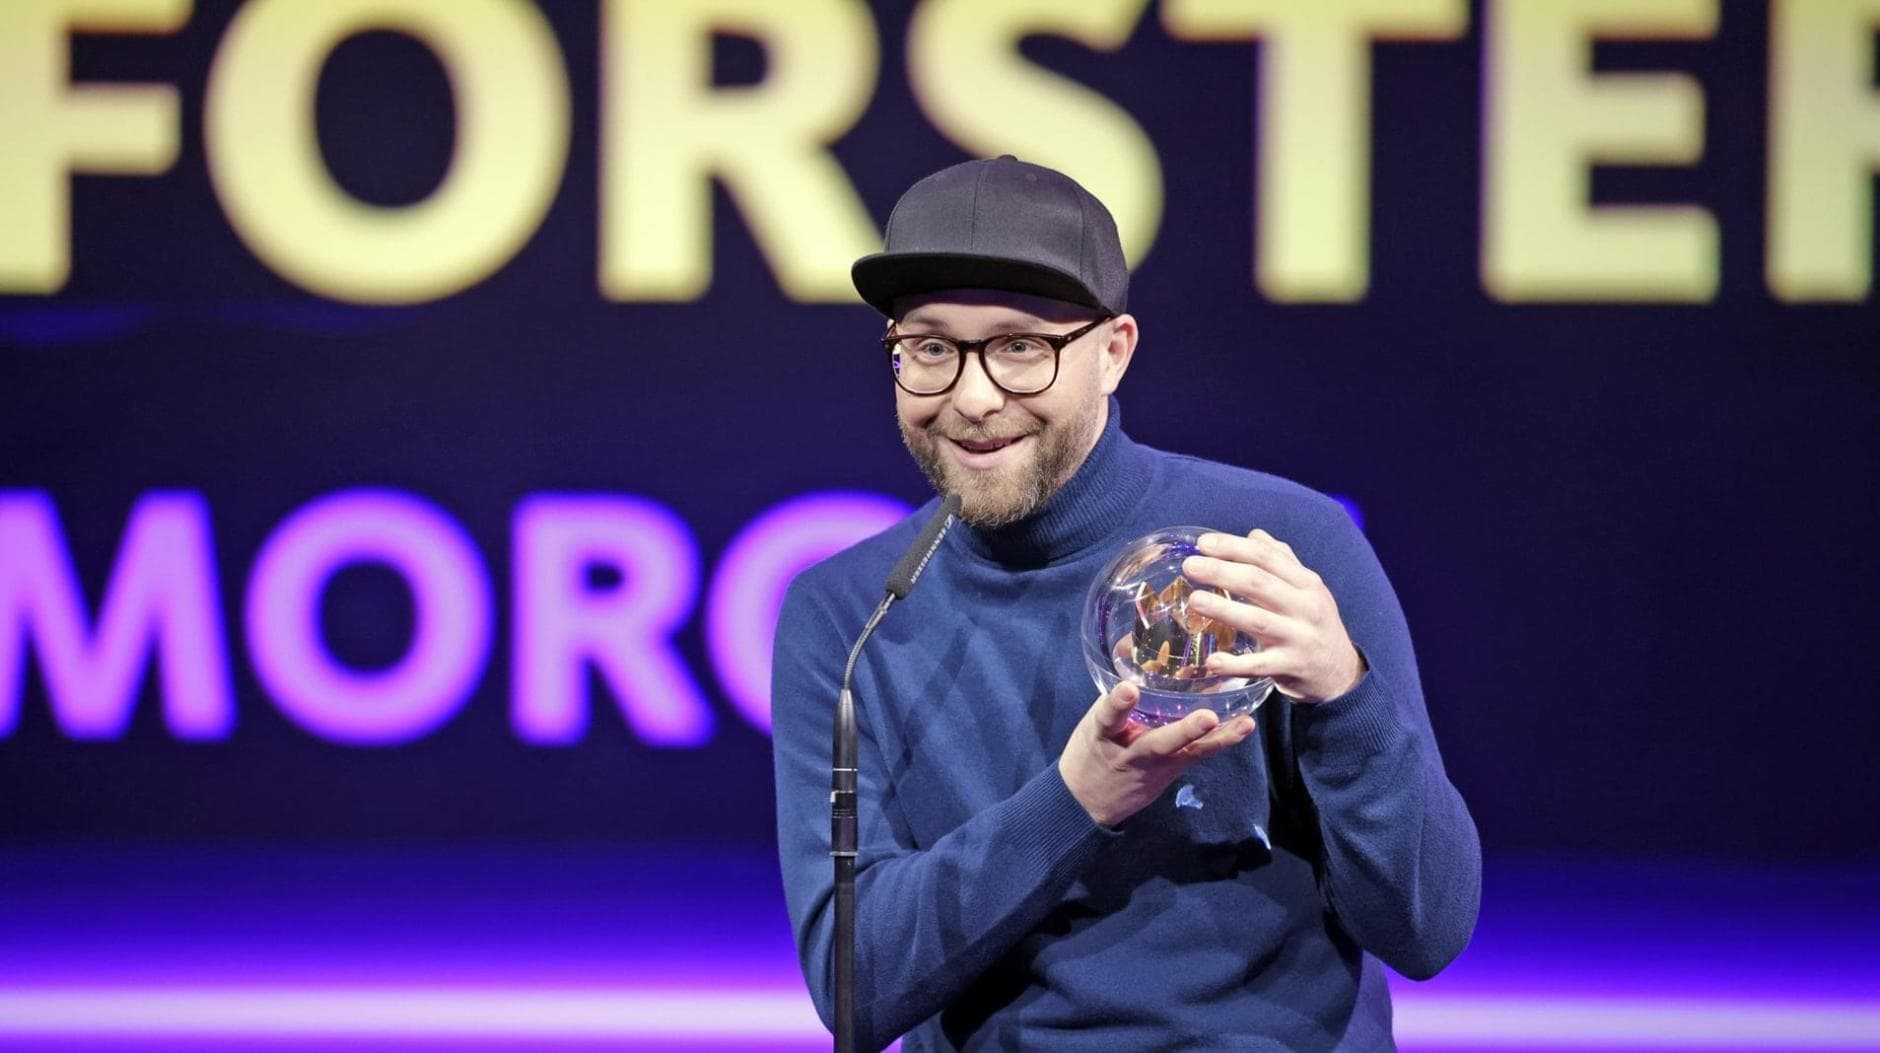 1LIVE Krone Mark Forster Beste Single Übermorgen